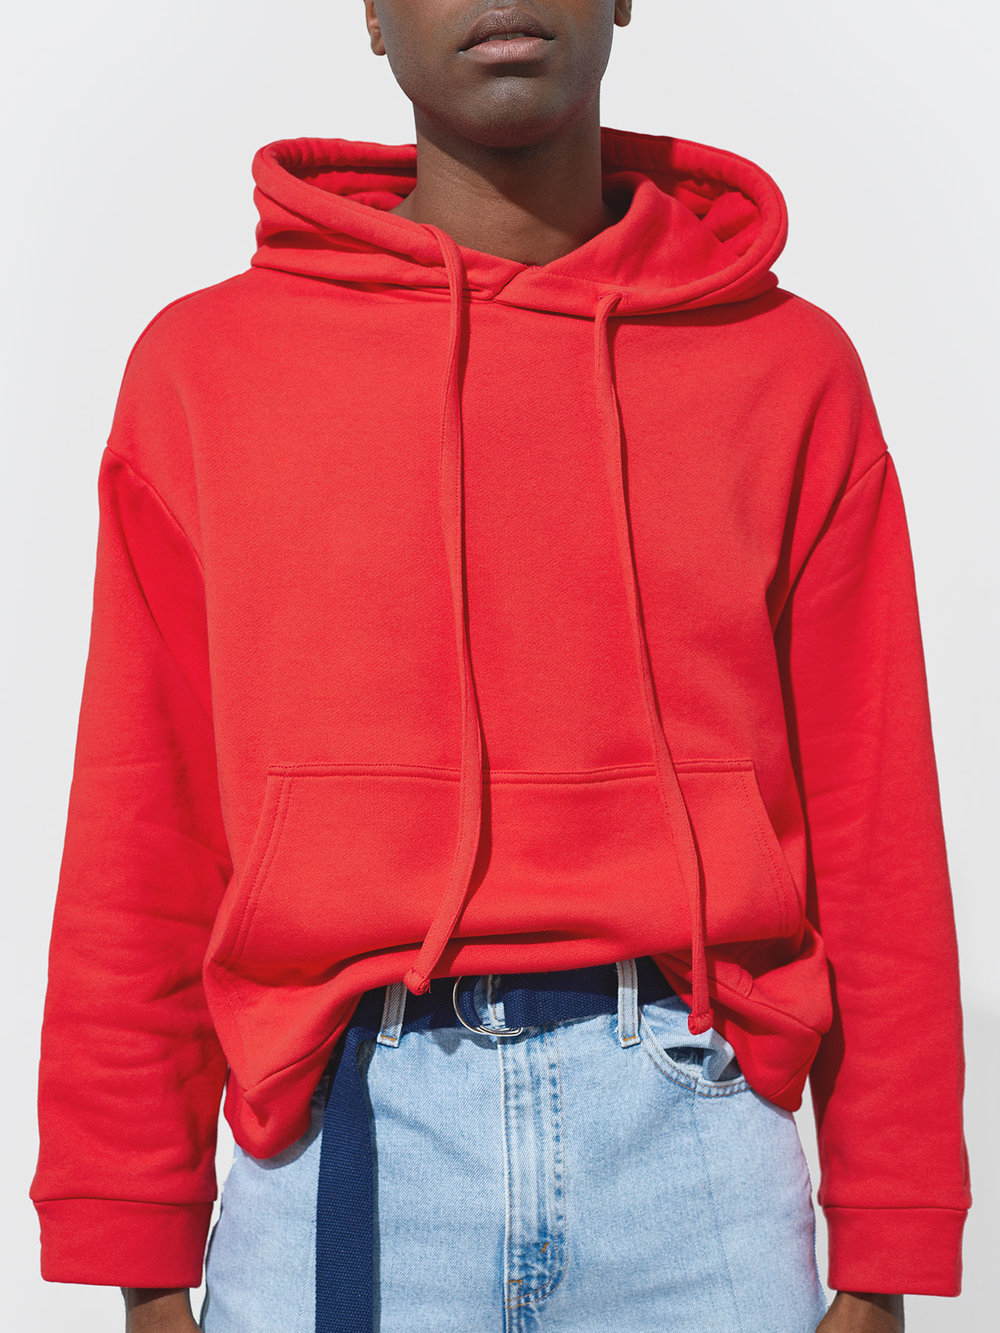 Travis Wears One DNA Oversized Hoodie in Red